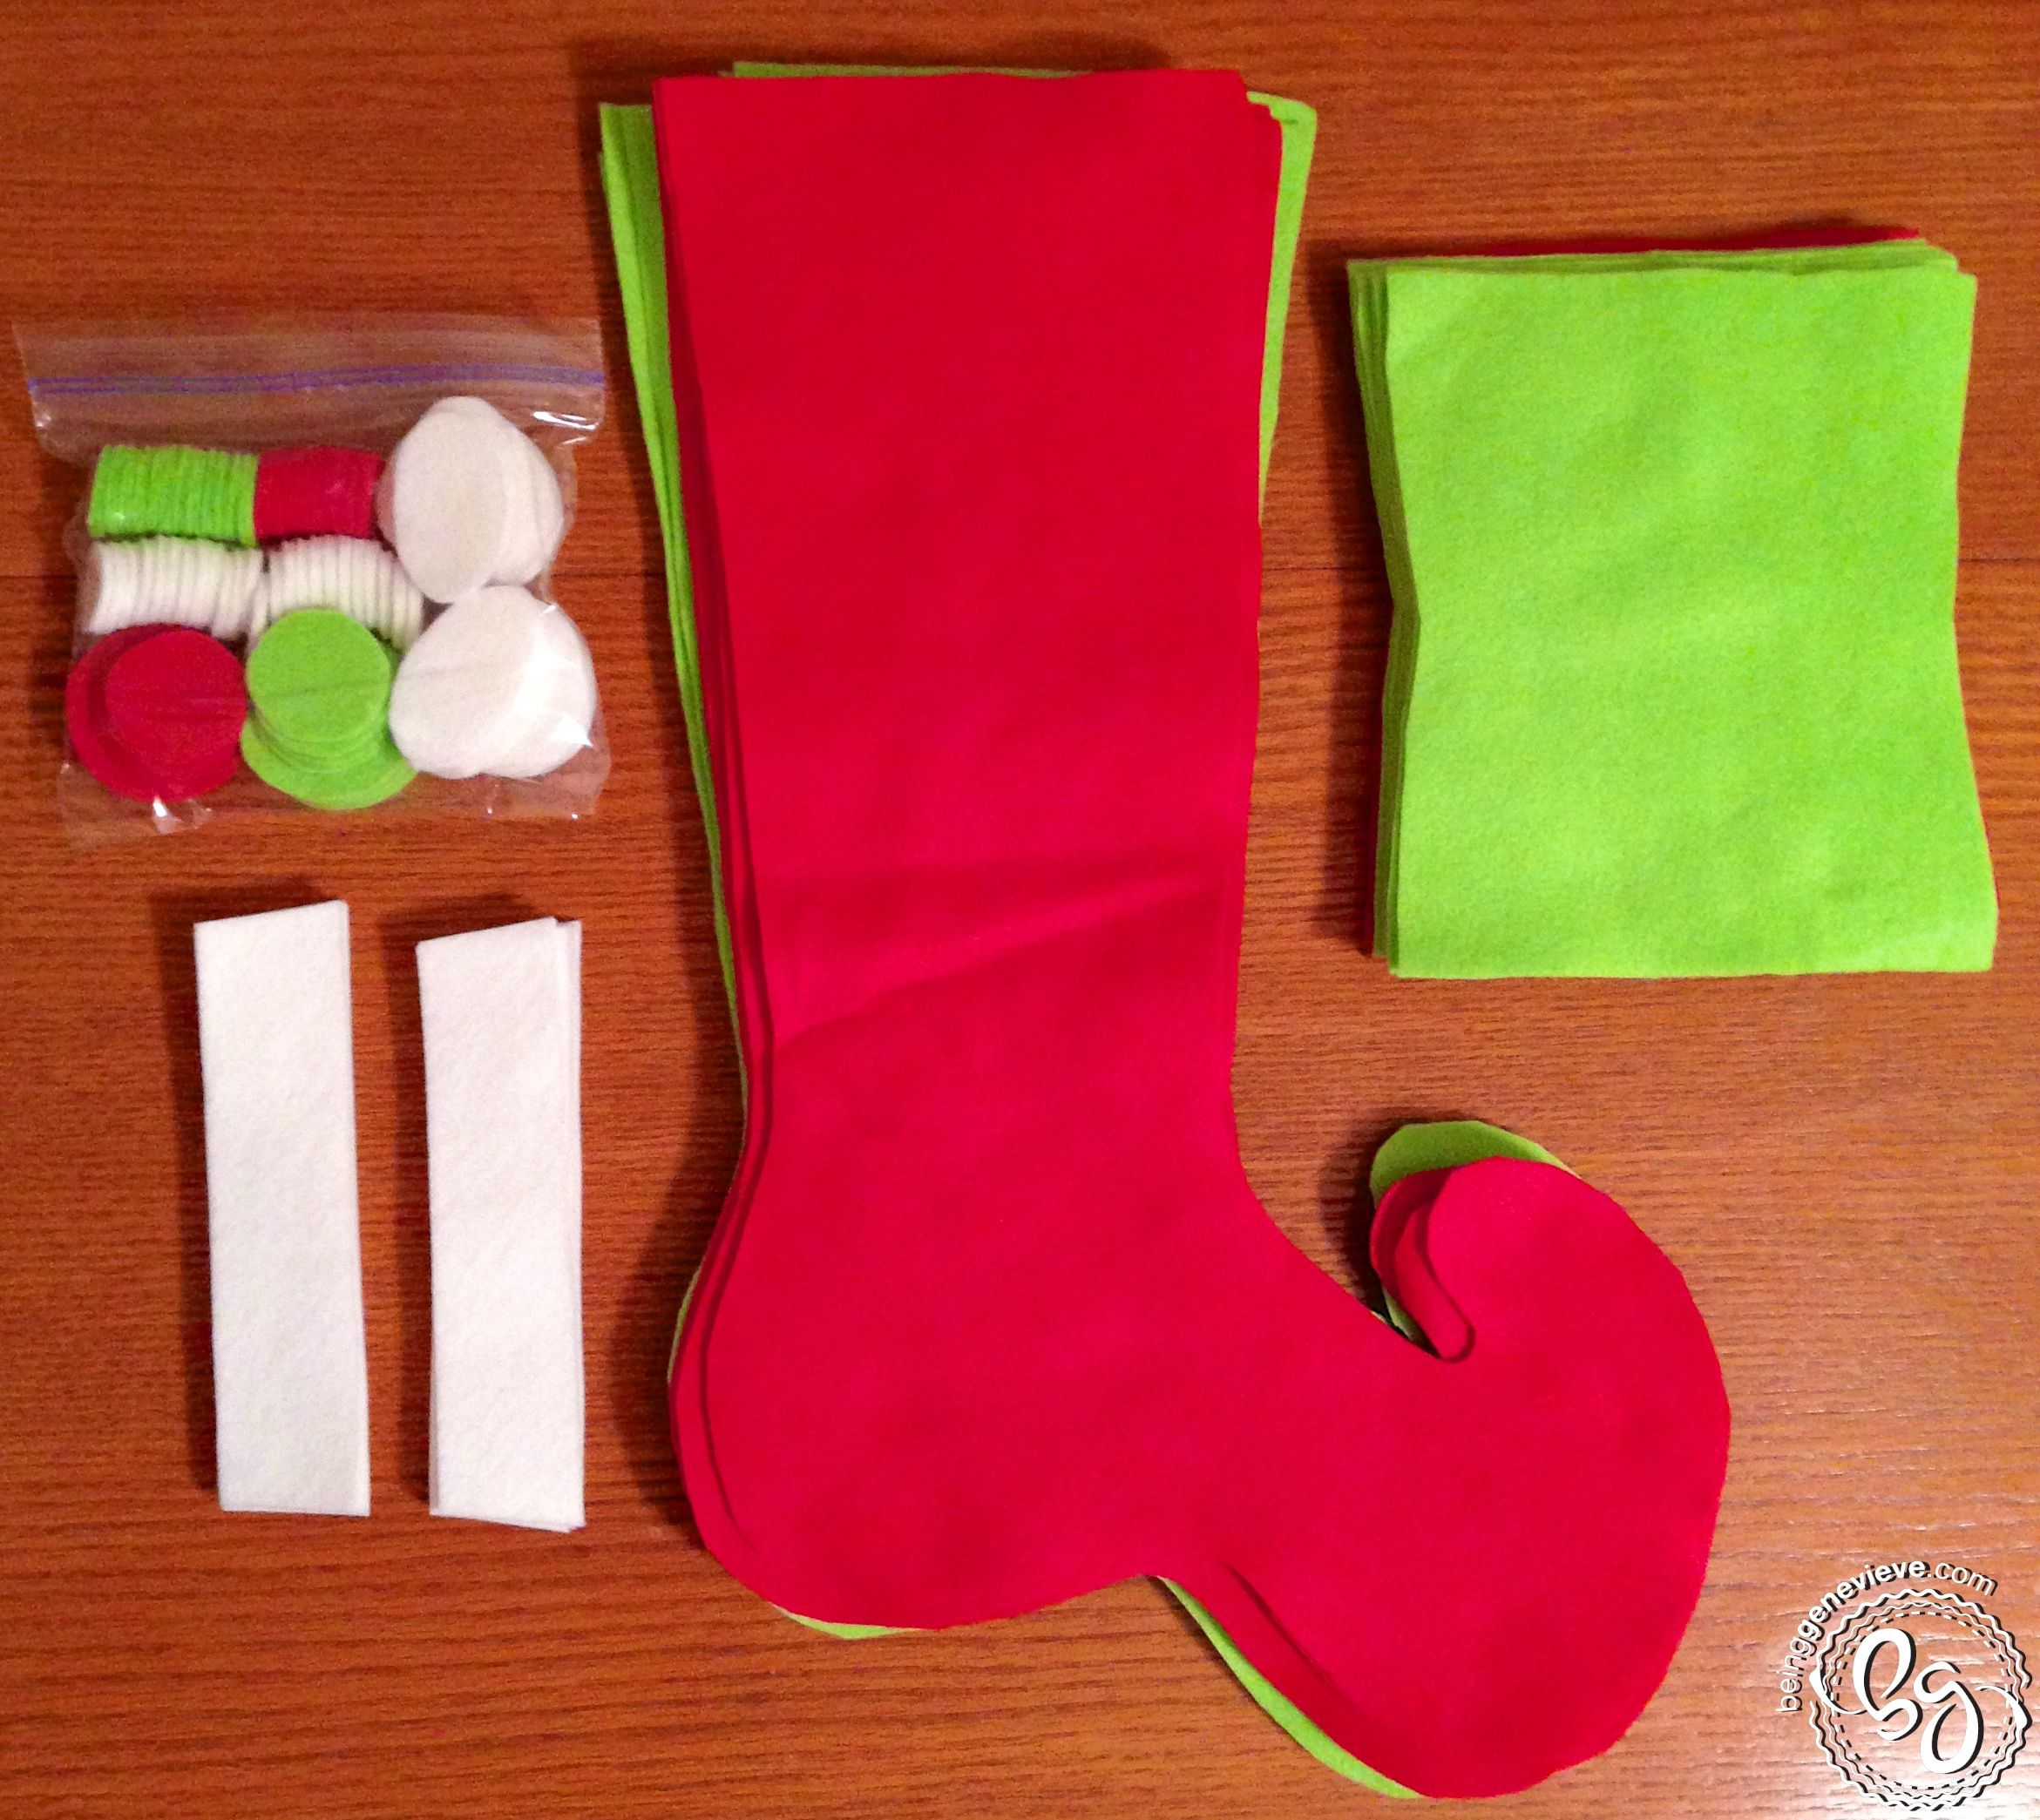 template grinch stocking pattern  Whoville Christmas Stockings | Grinch christmas decorations ...